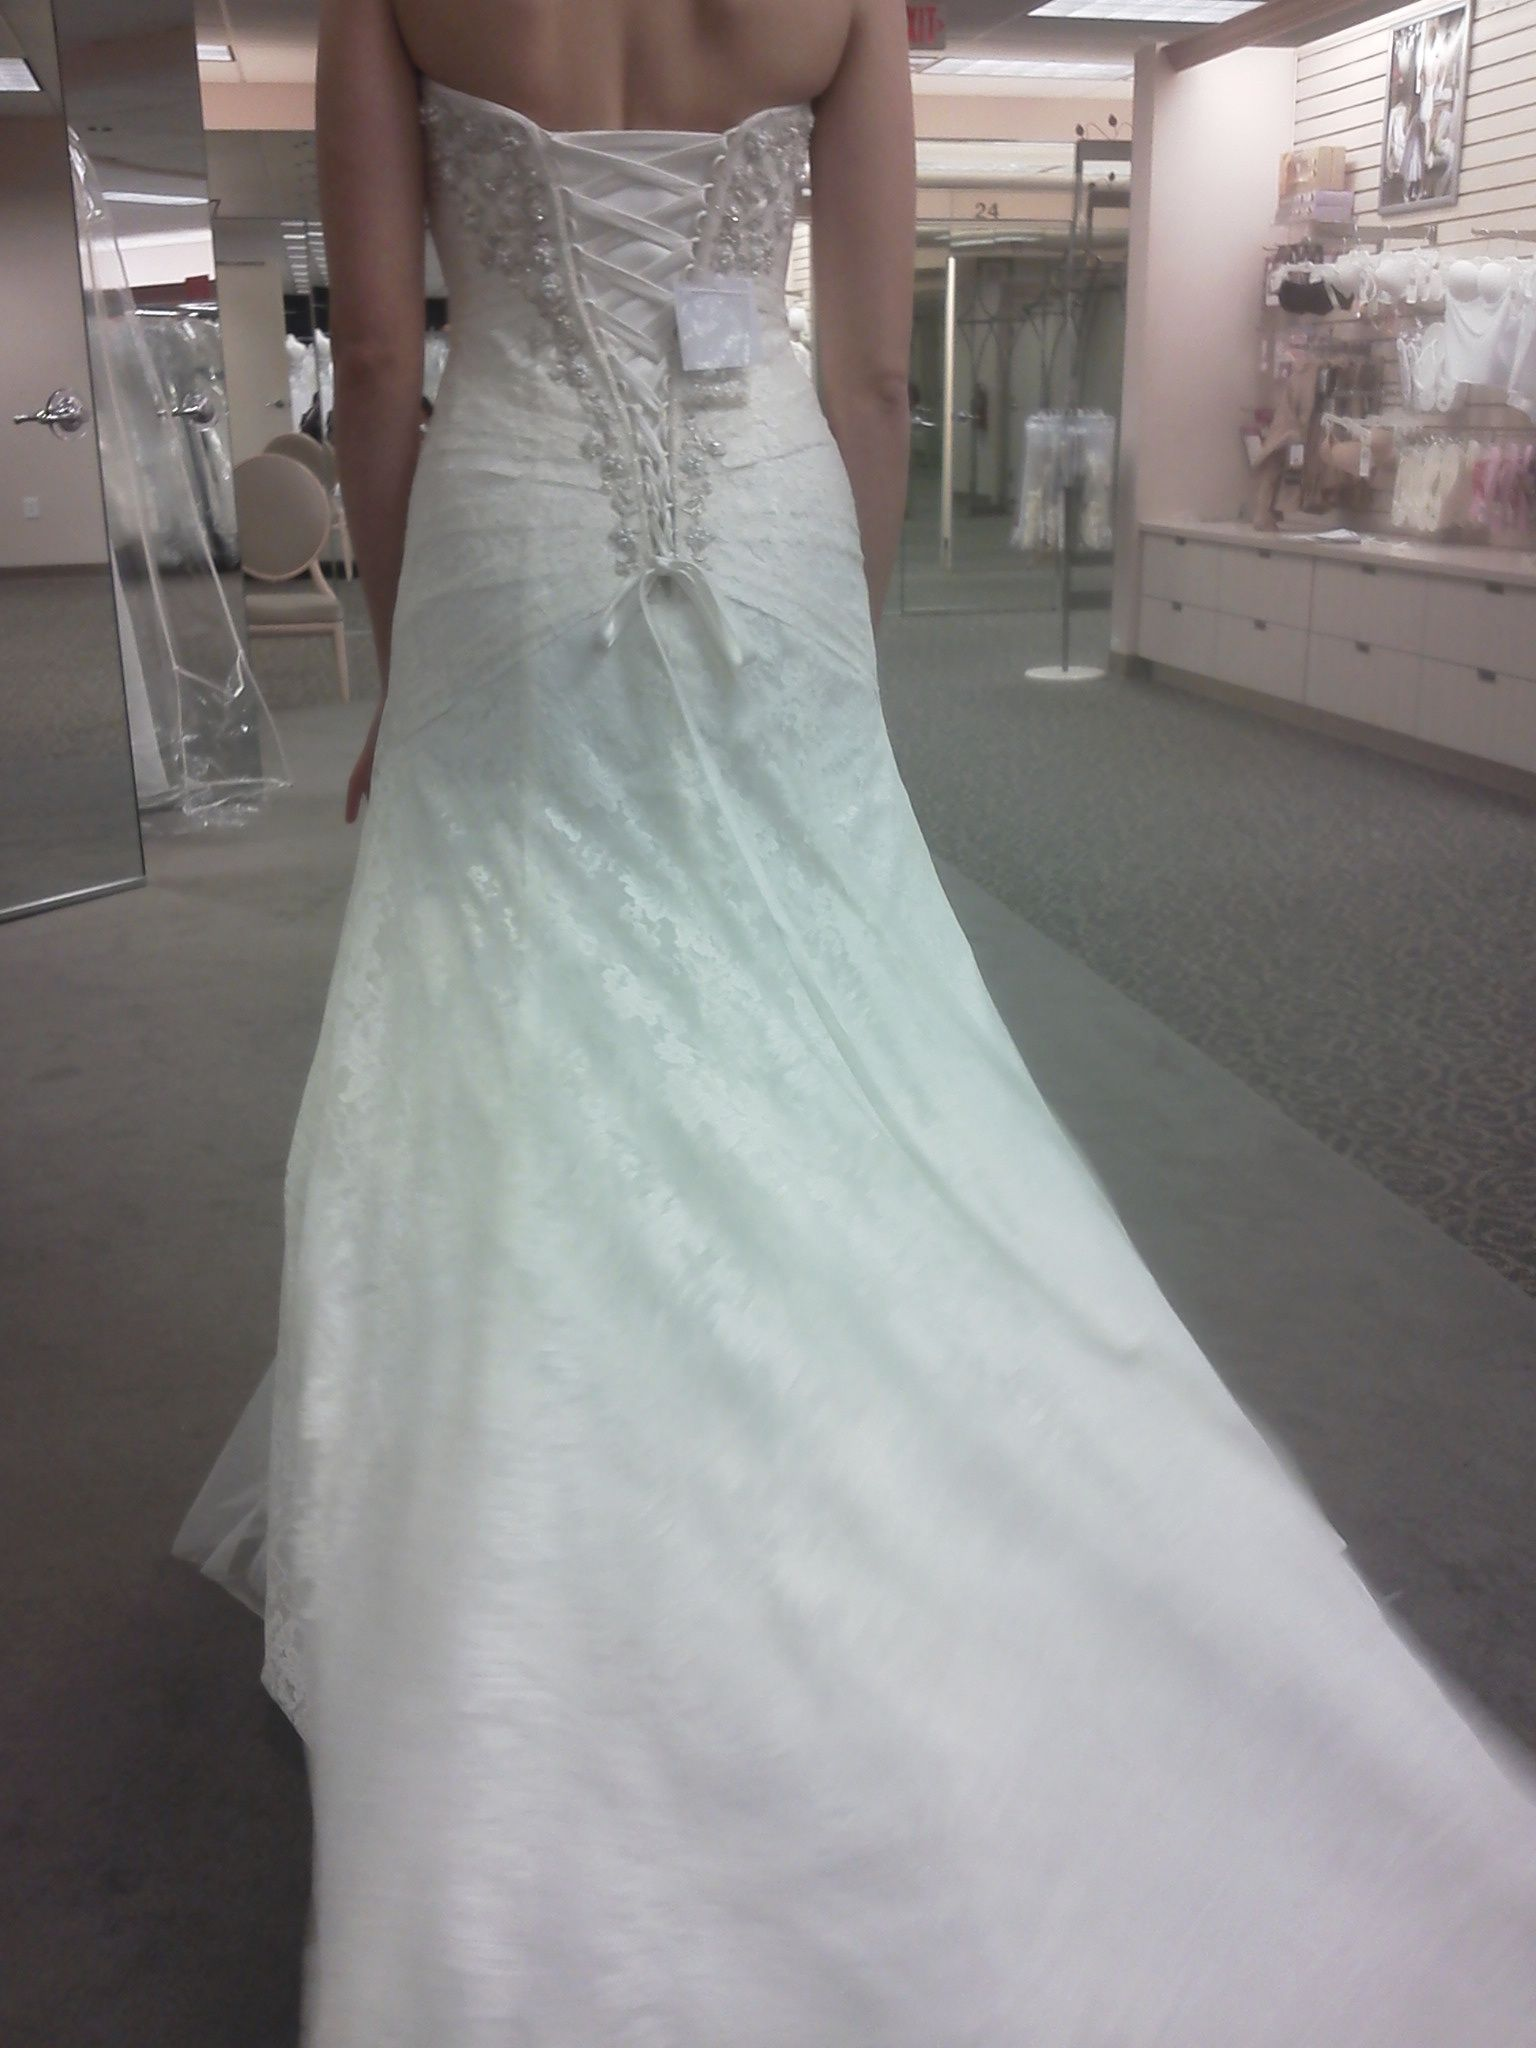 Yp3344 Wedding Dress | Wedding dress, Recycled bride and Weddings